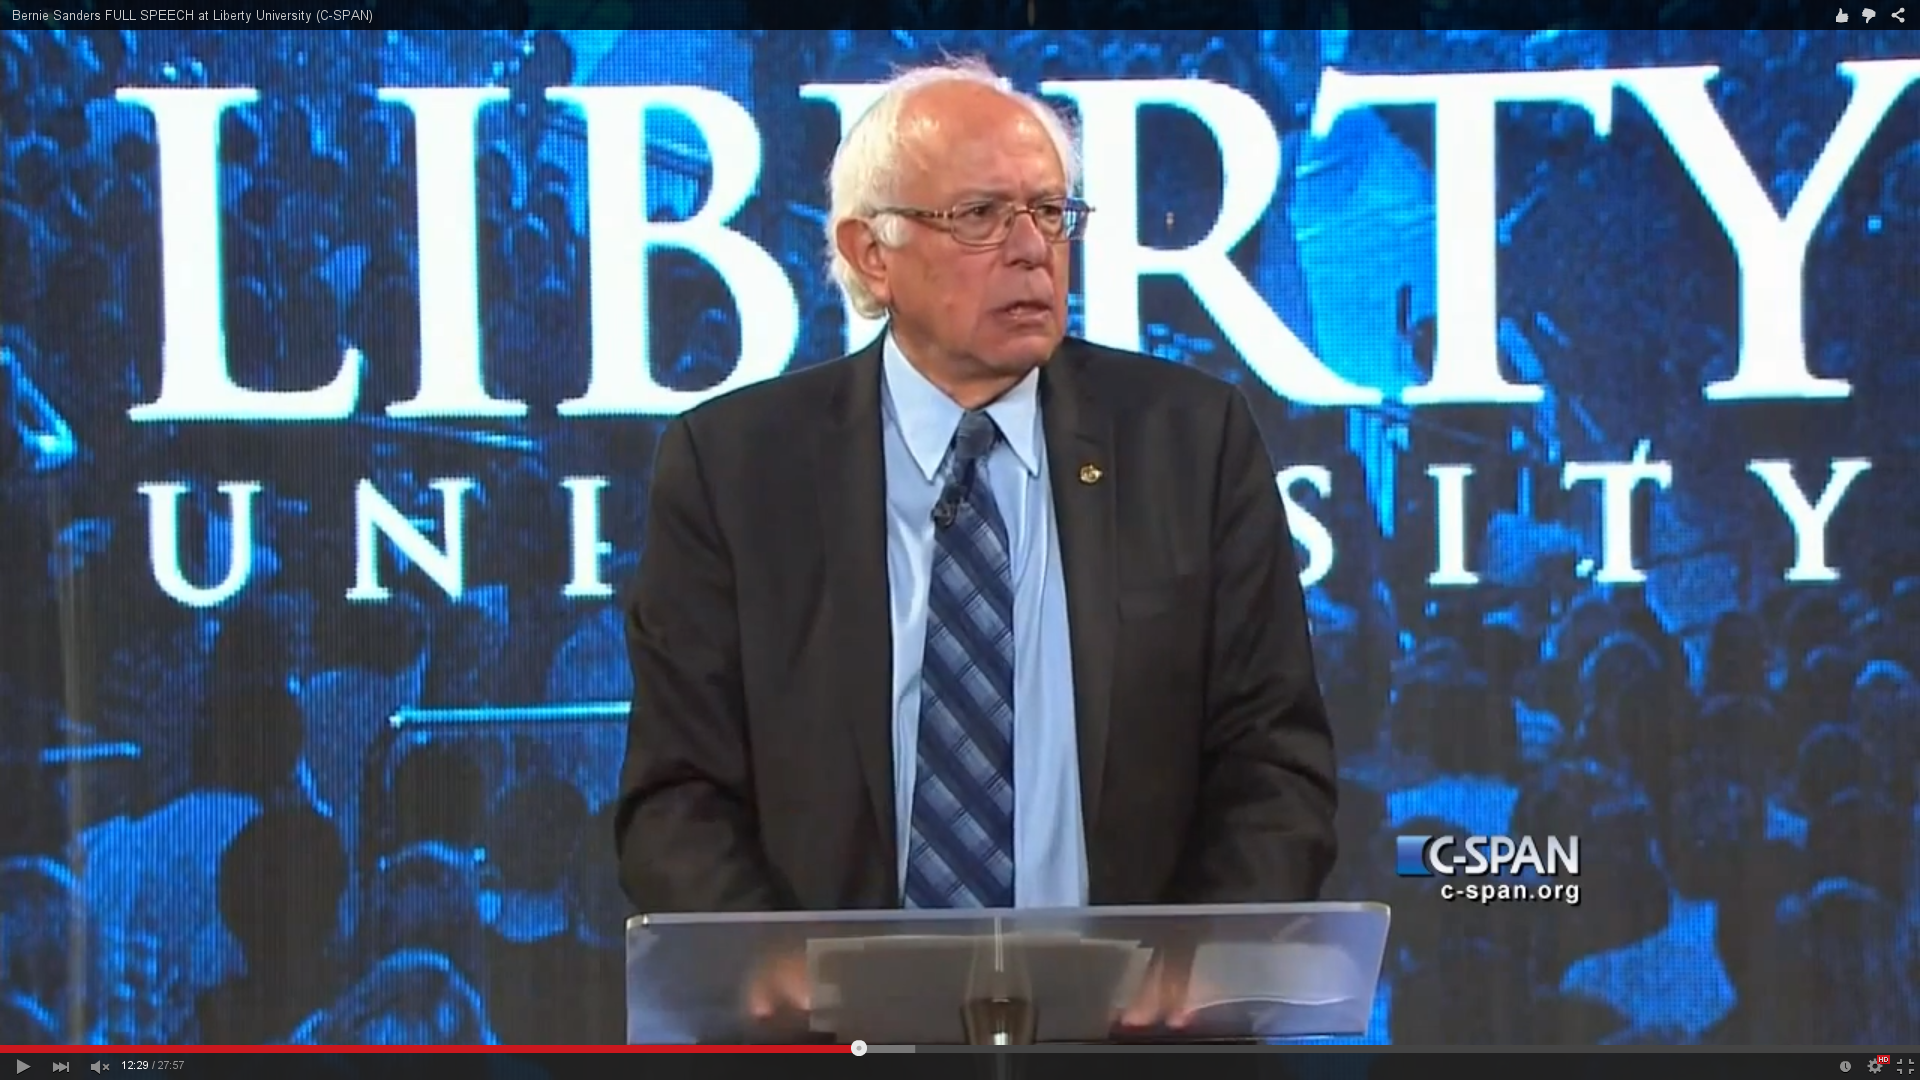 Bernie Sanders at Liberty University